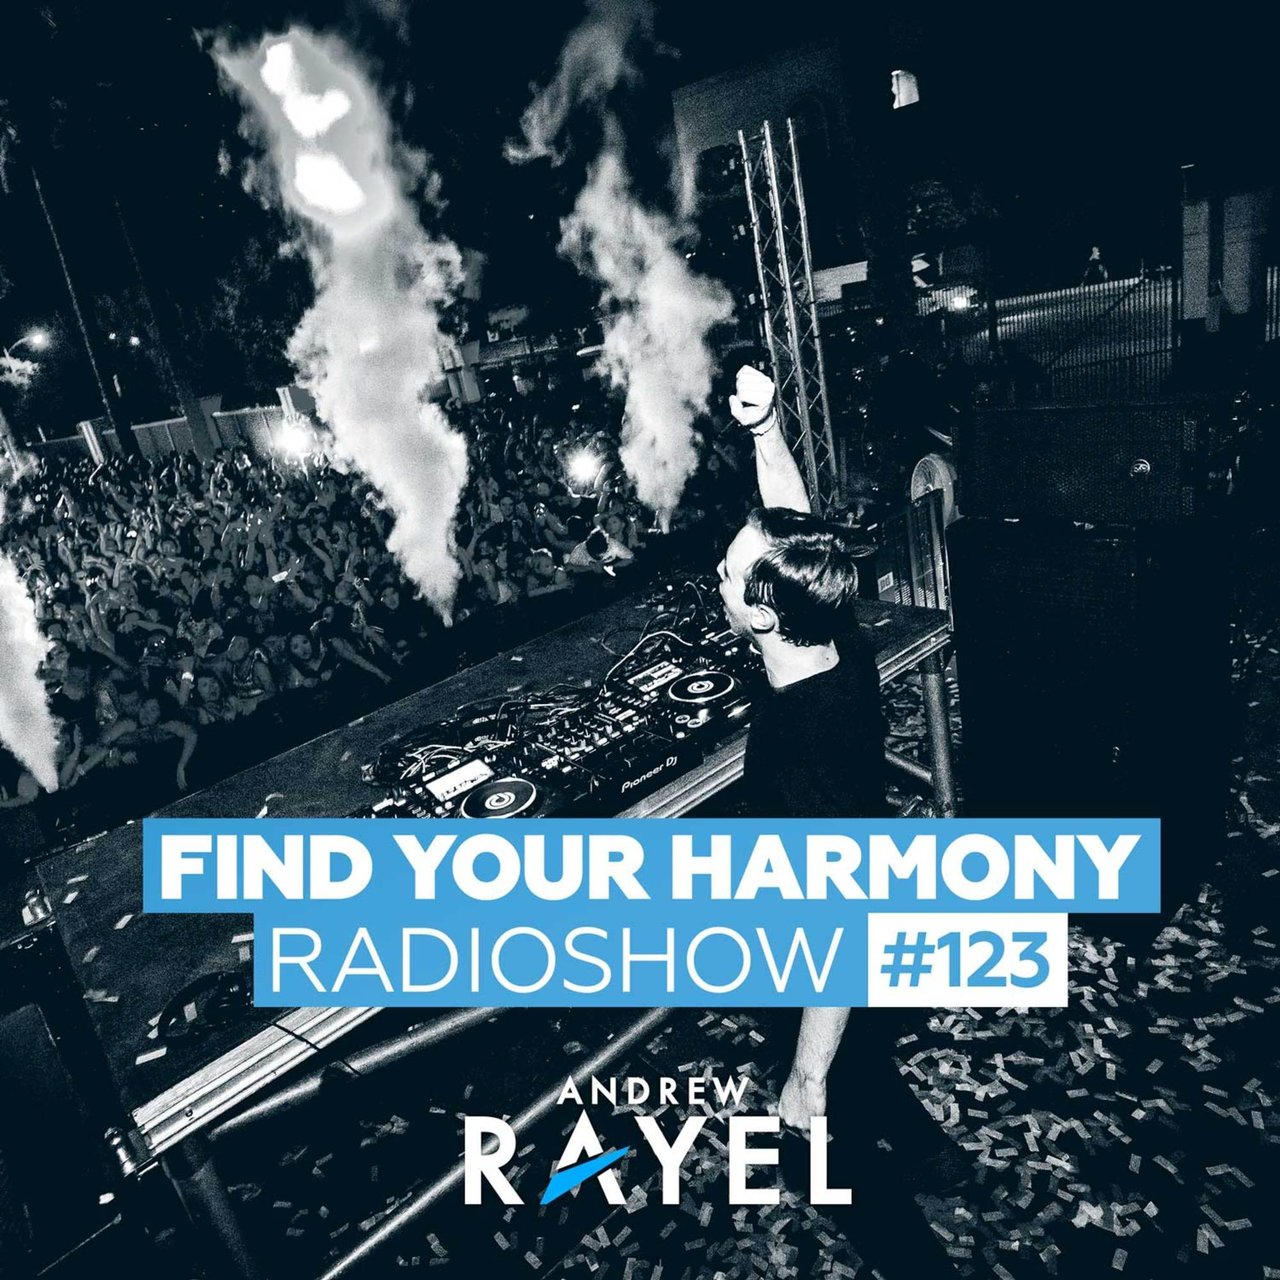 Find Your Harmony Radioshow #123